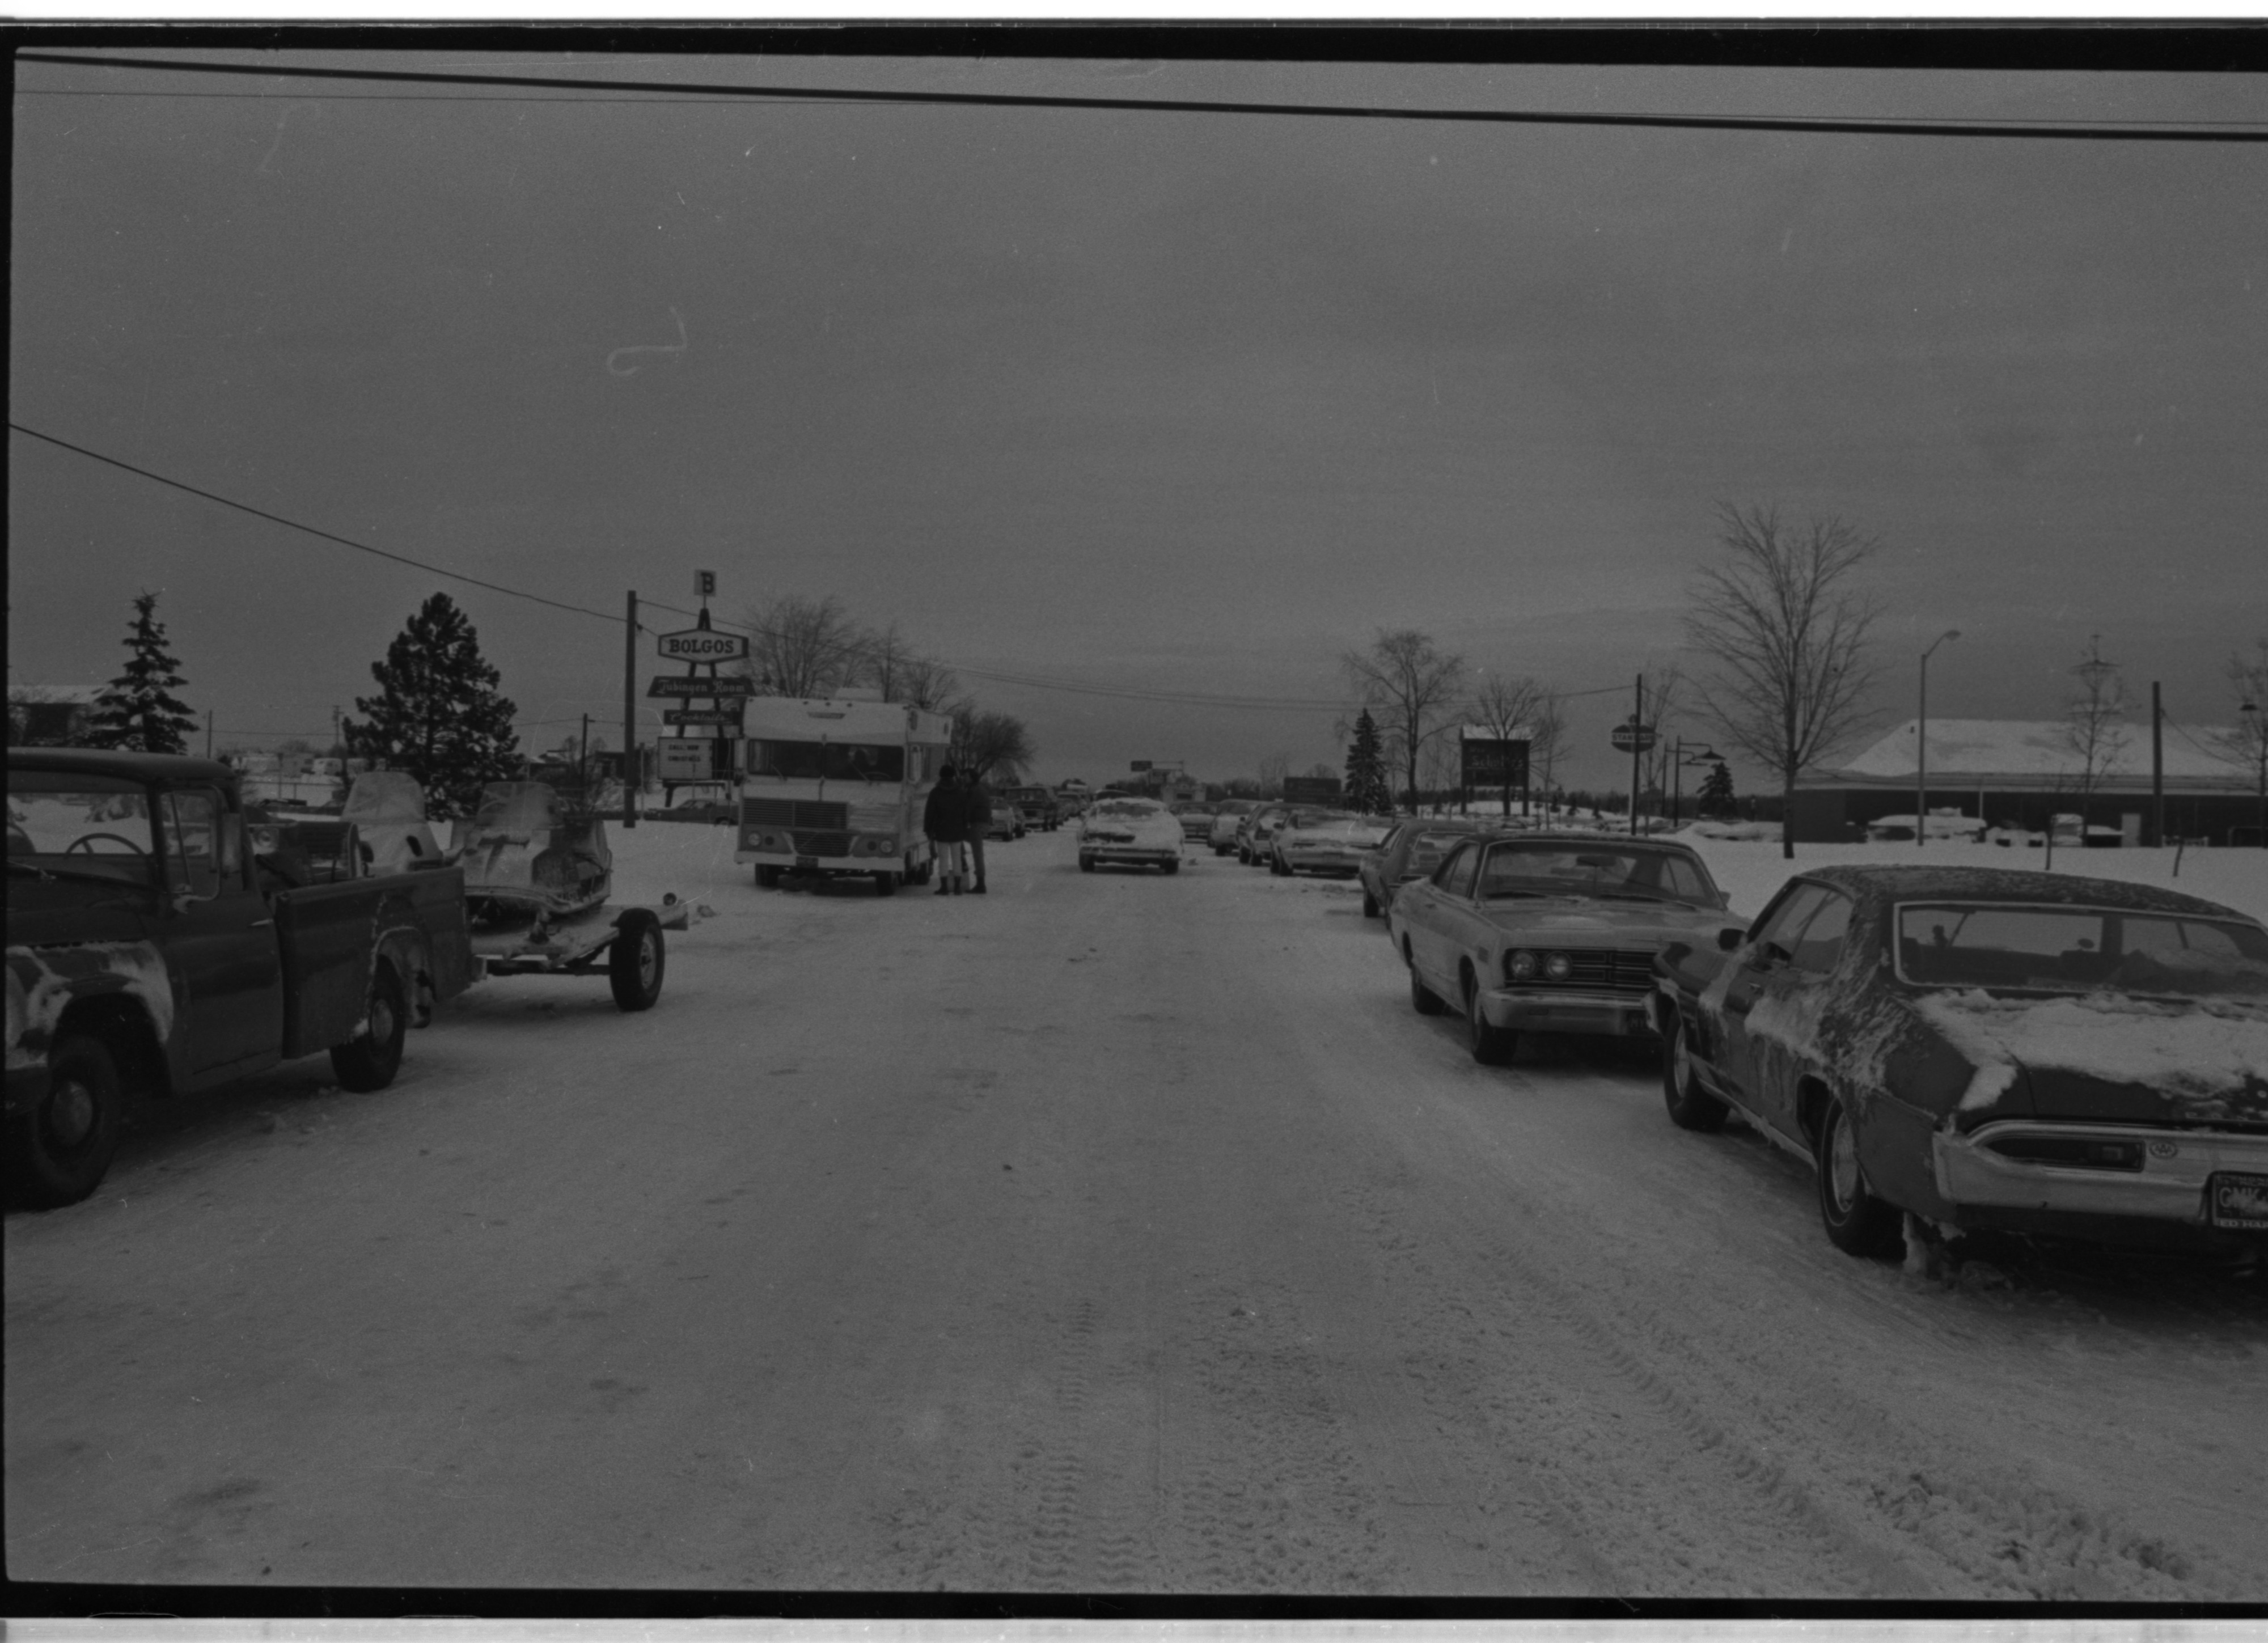 Line-Up Of Stranded Vehicles Following Record Snowfall, December 1974 image